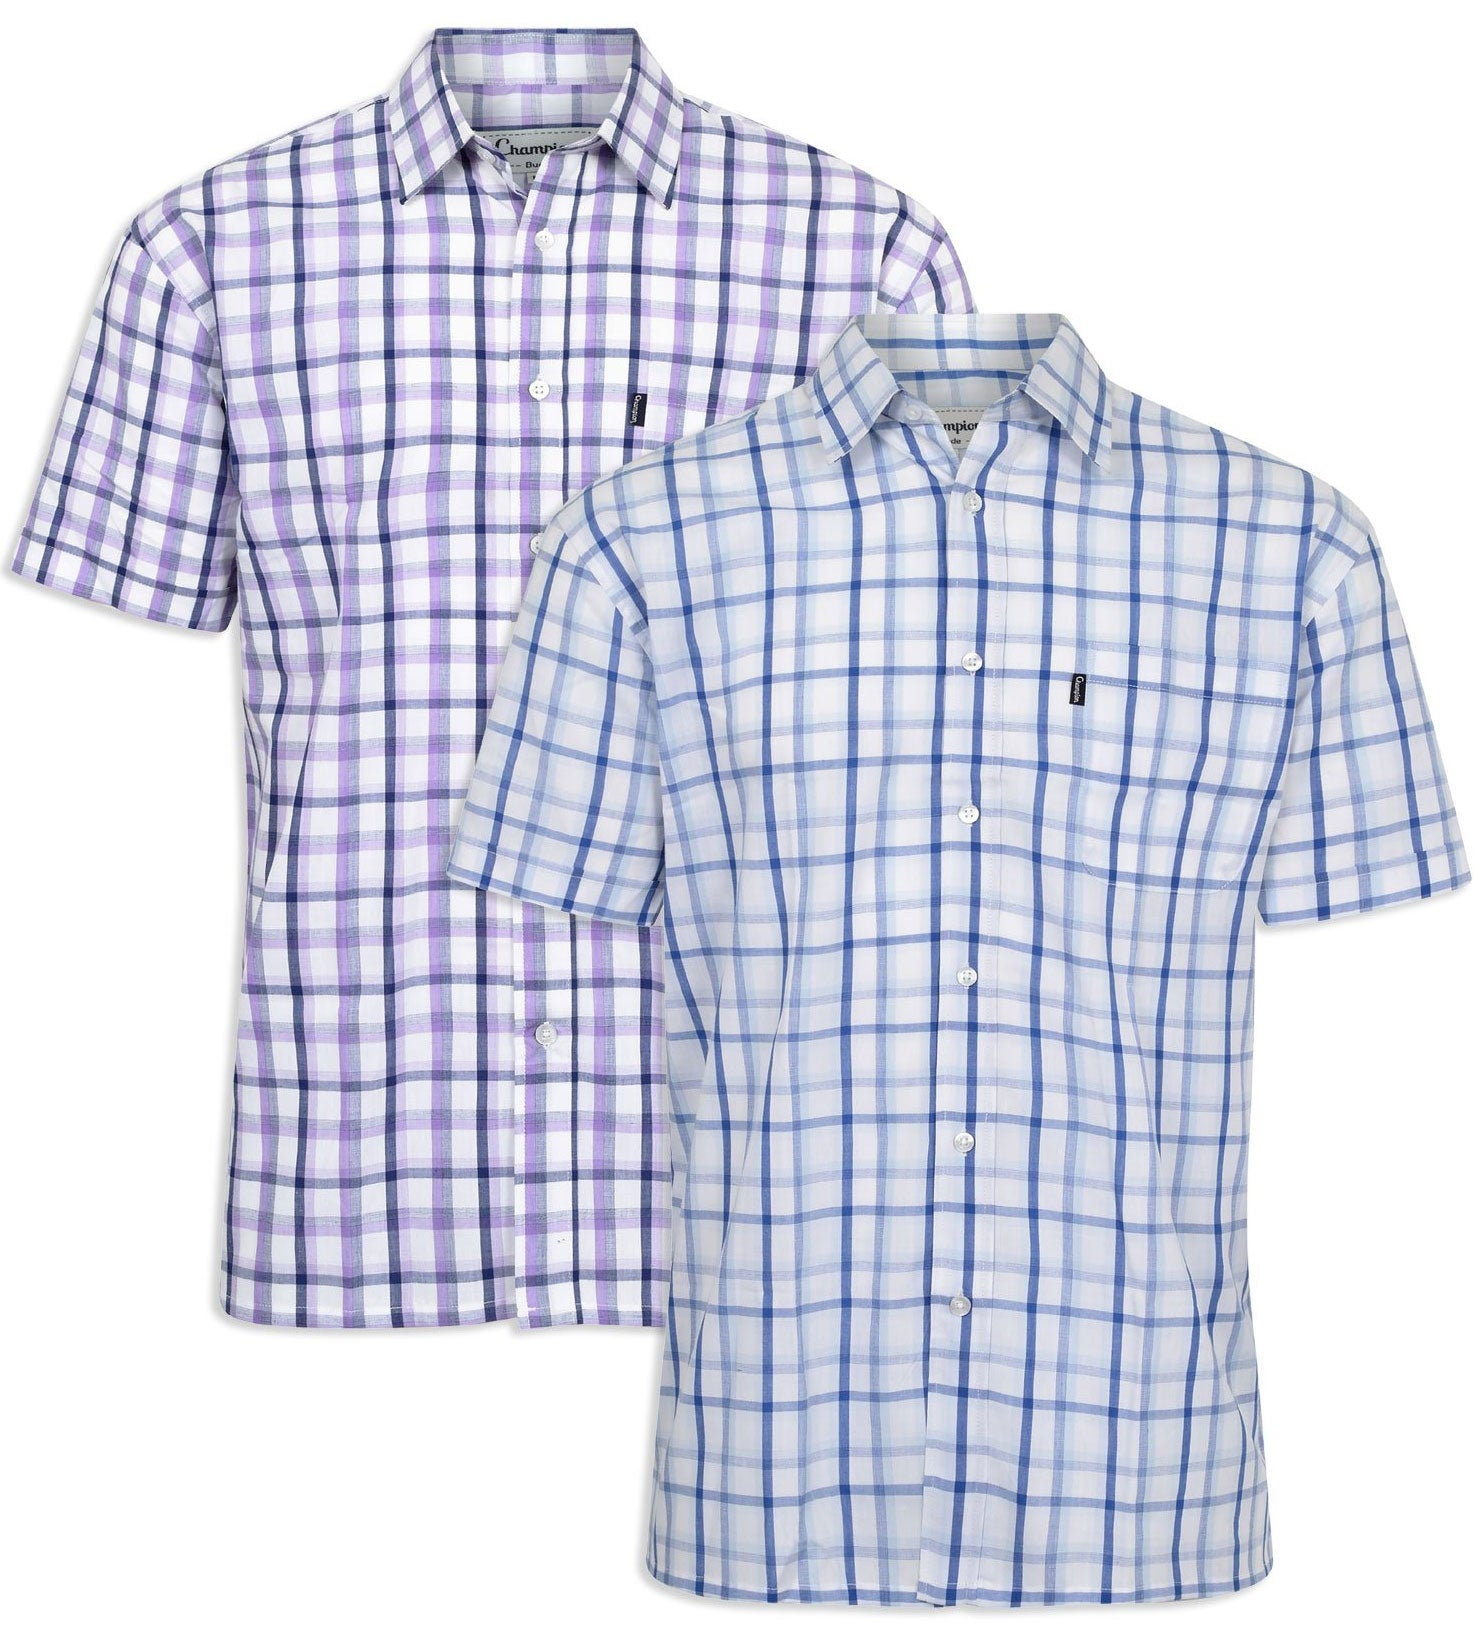 Champion Bude Short Sleeve Shirt - blue and navy check